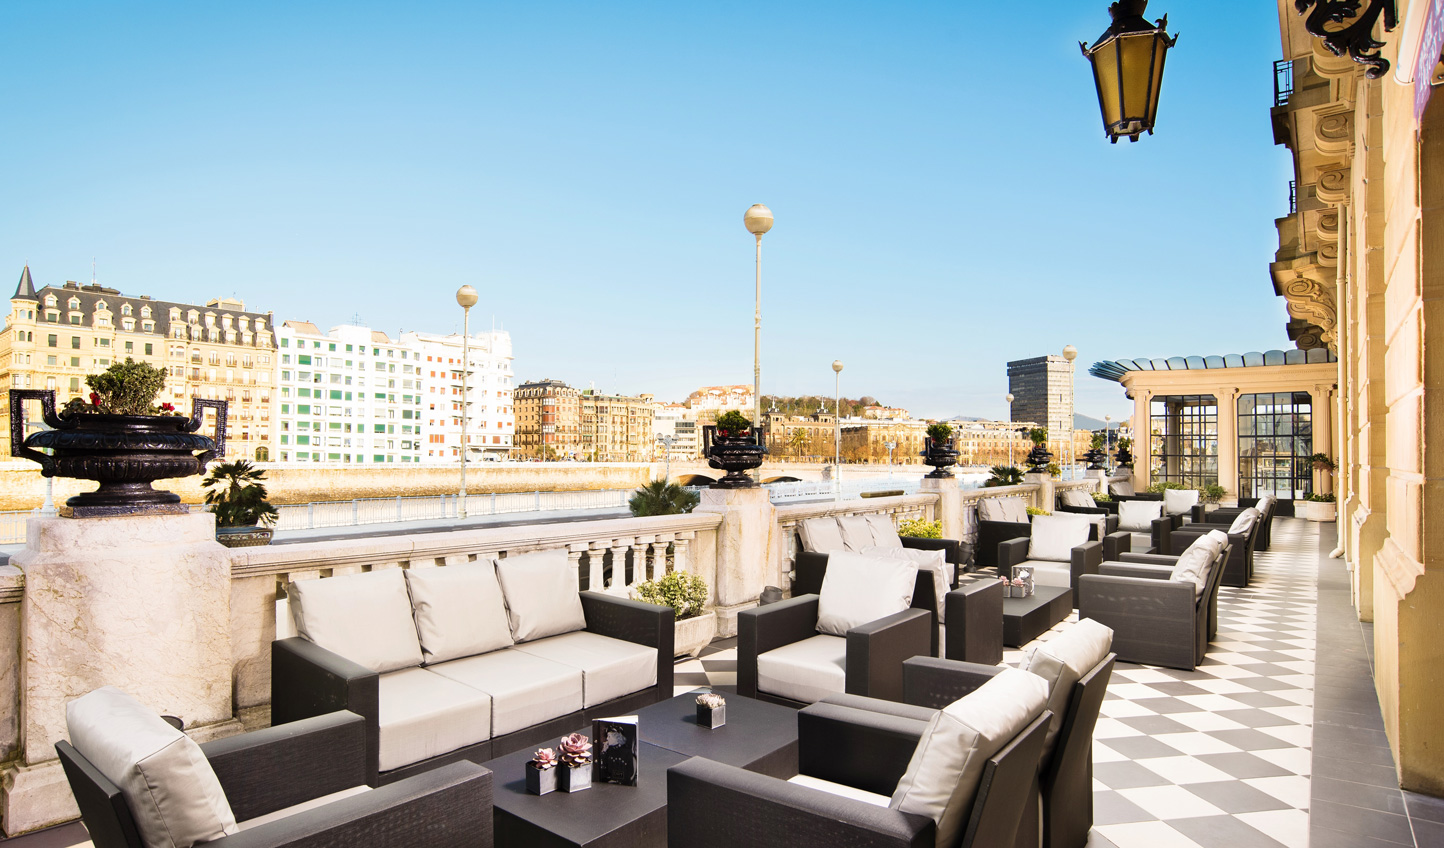 Catch some sun out on the terrace at Maria Christina